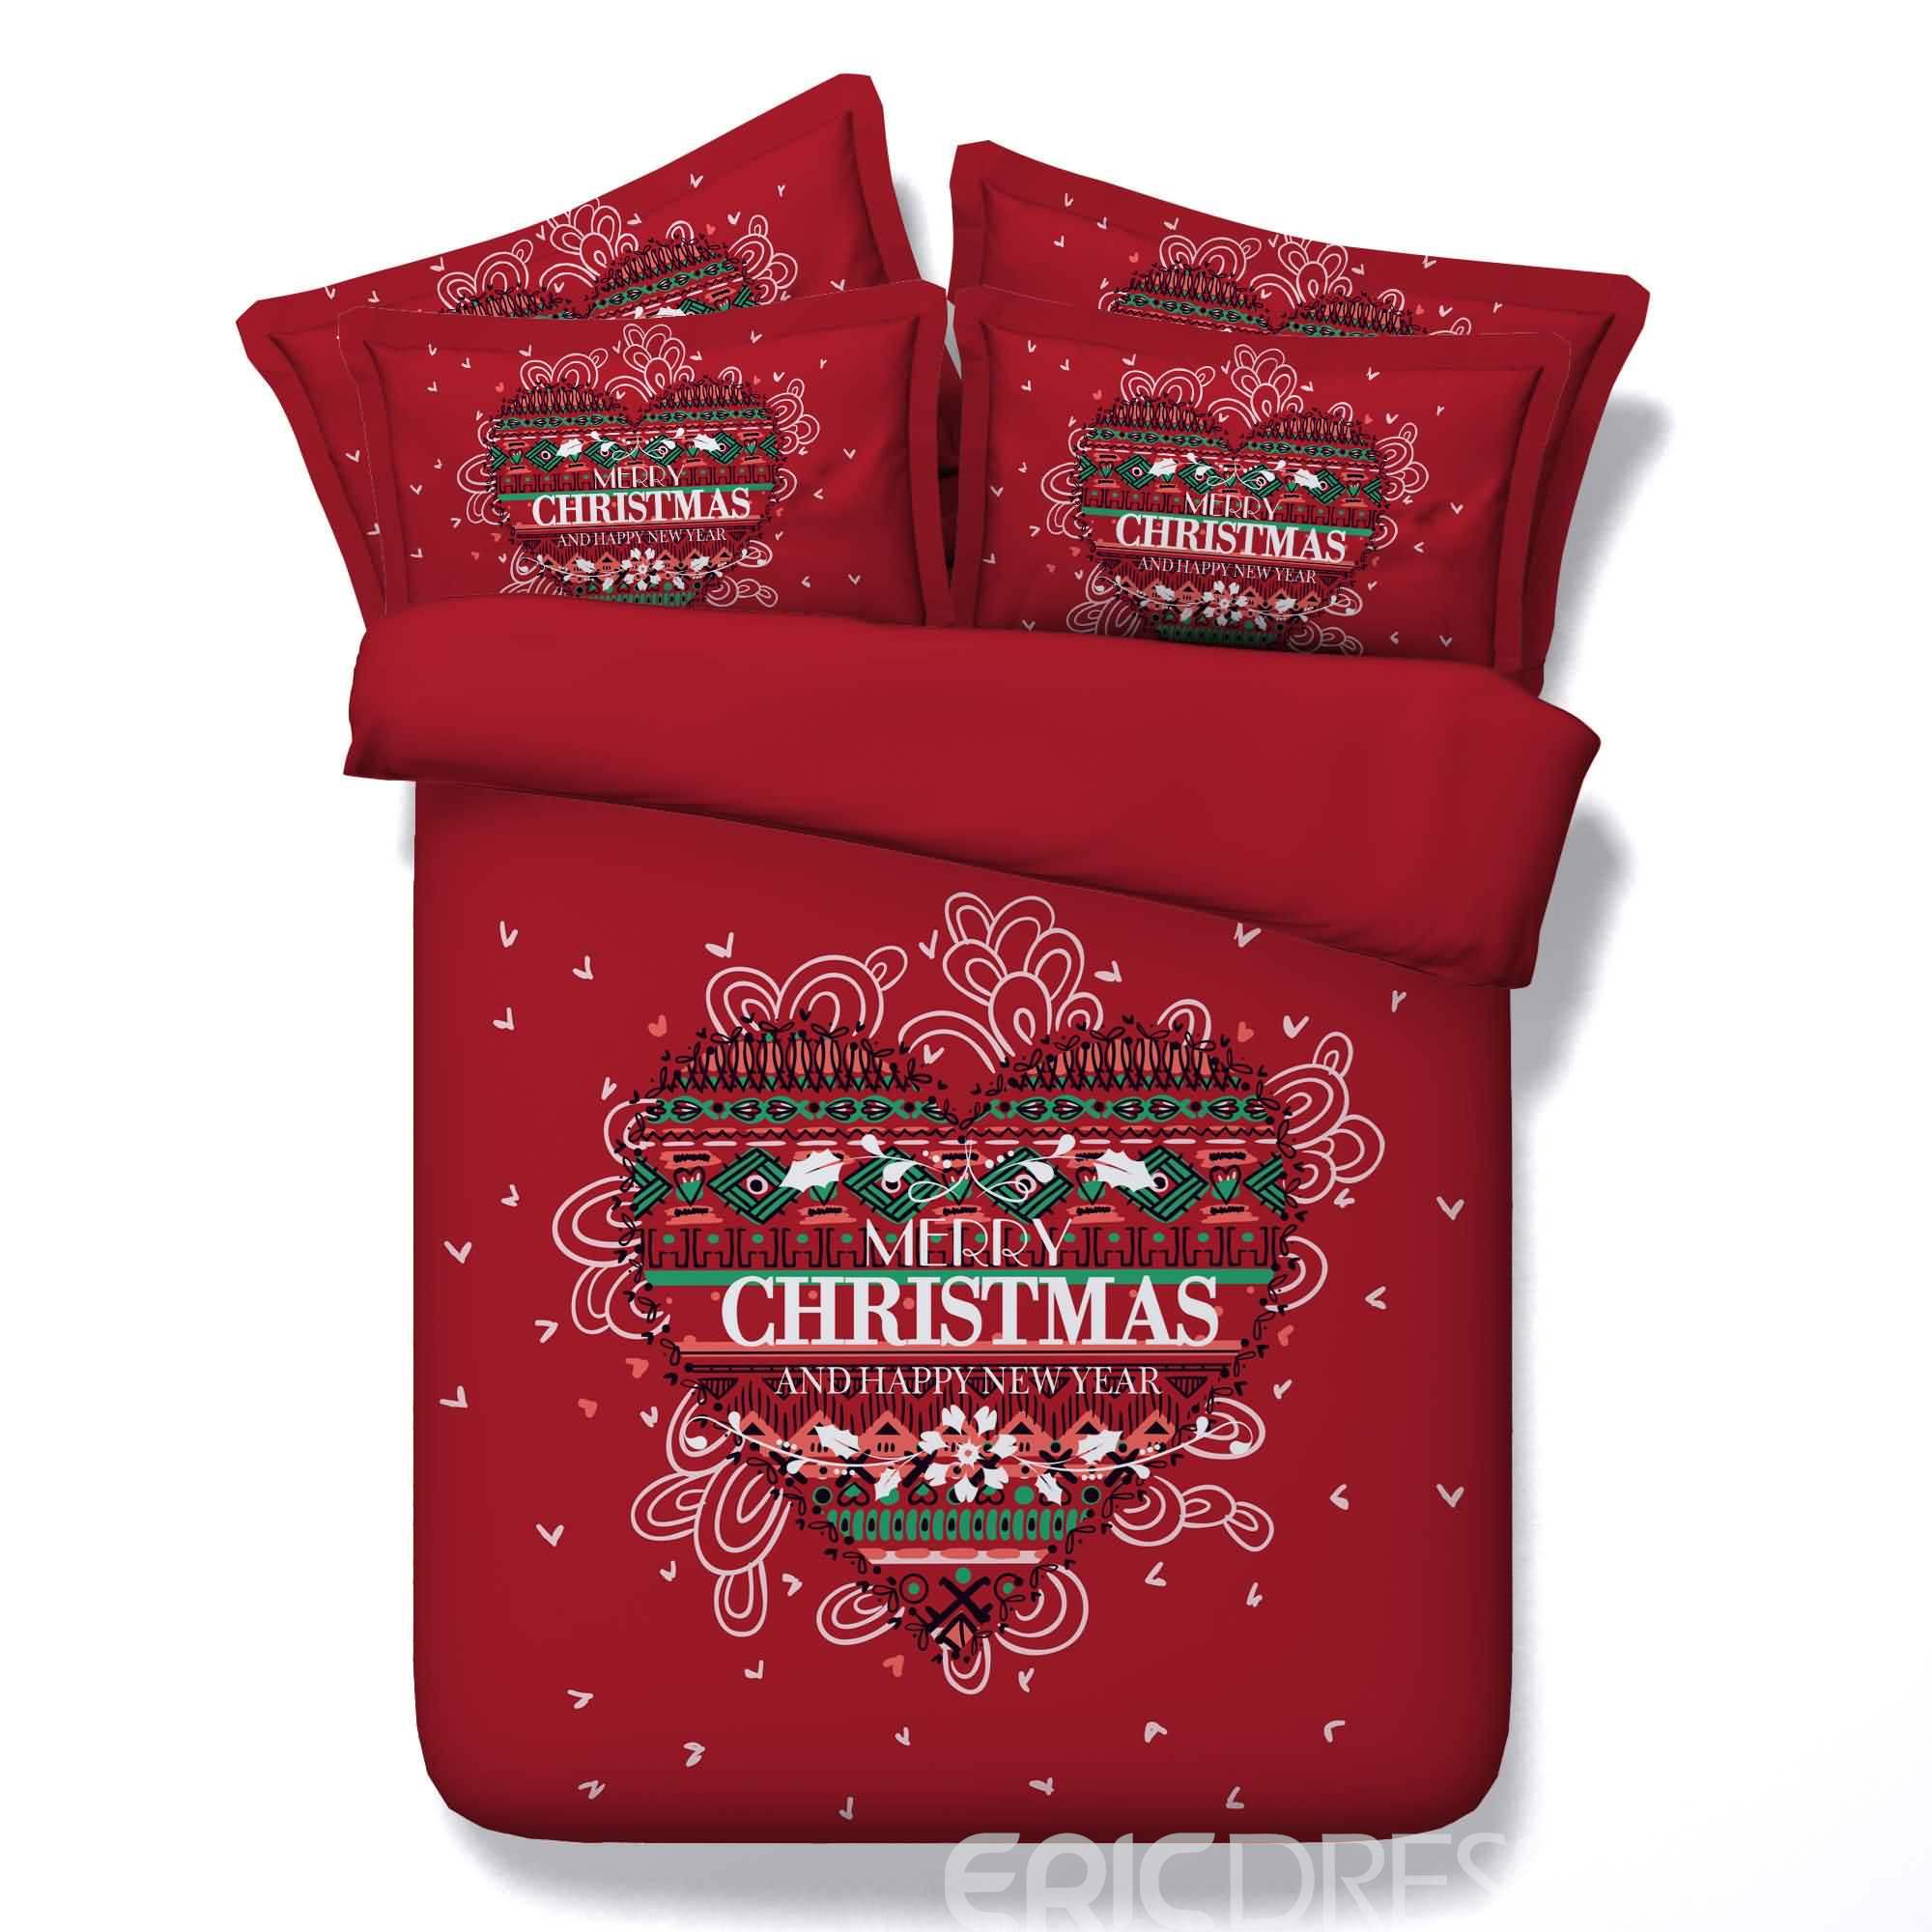 3D Heart and Merry Christmas Printed Cotton 4-Piece Red Bedding Sets/Duvet Covers